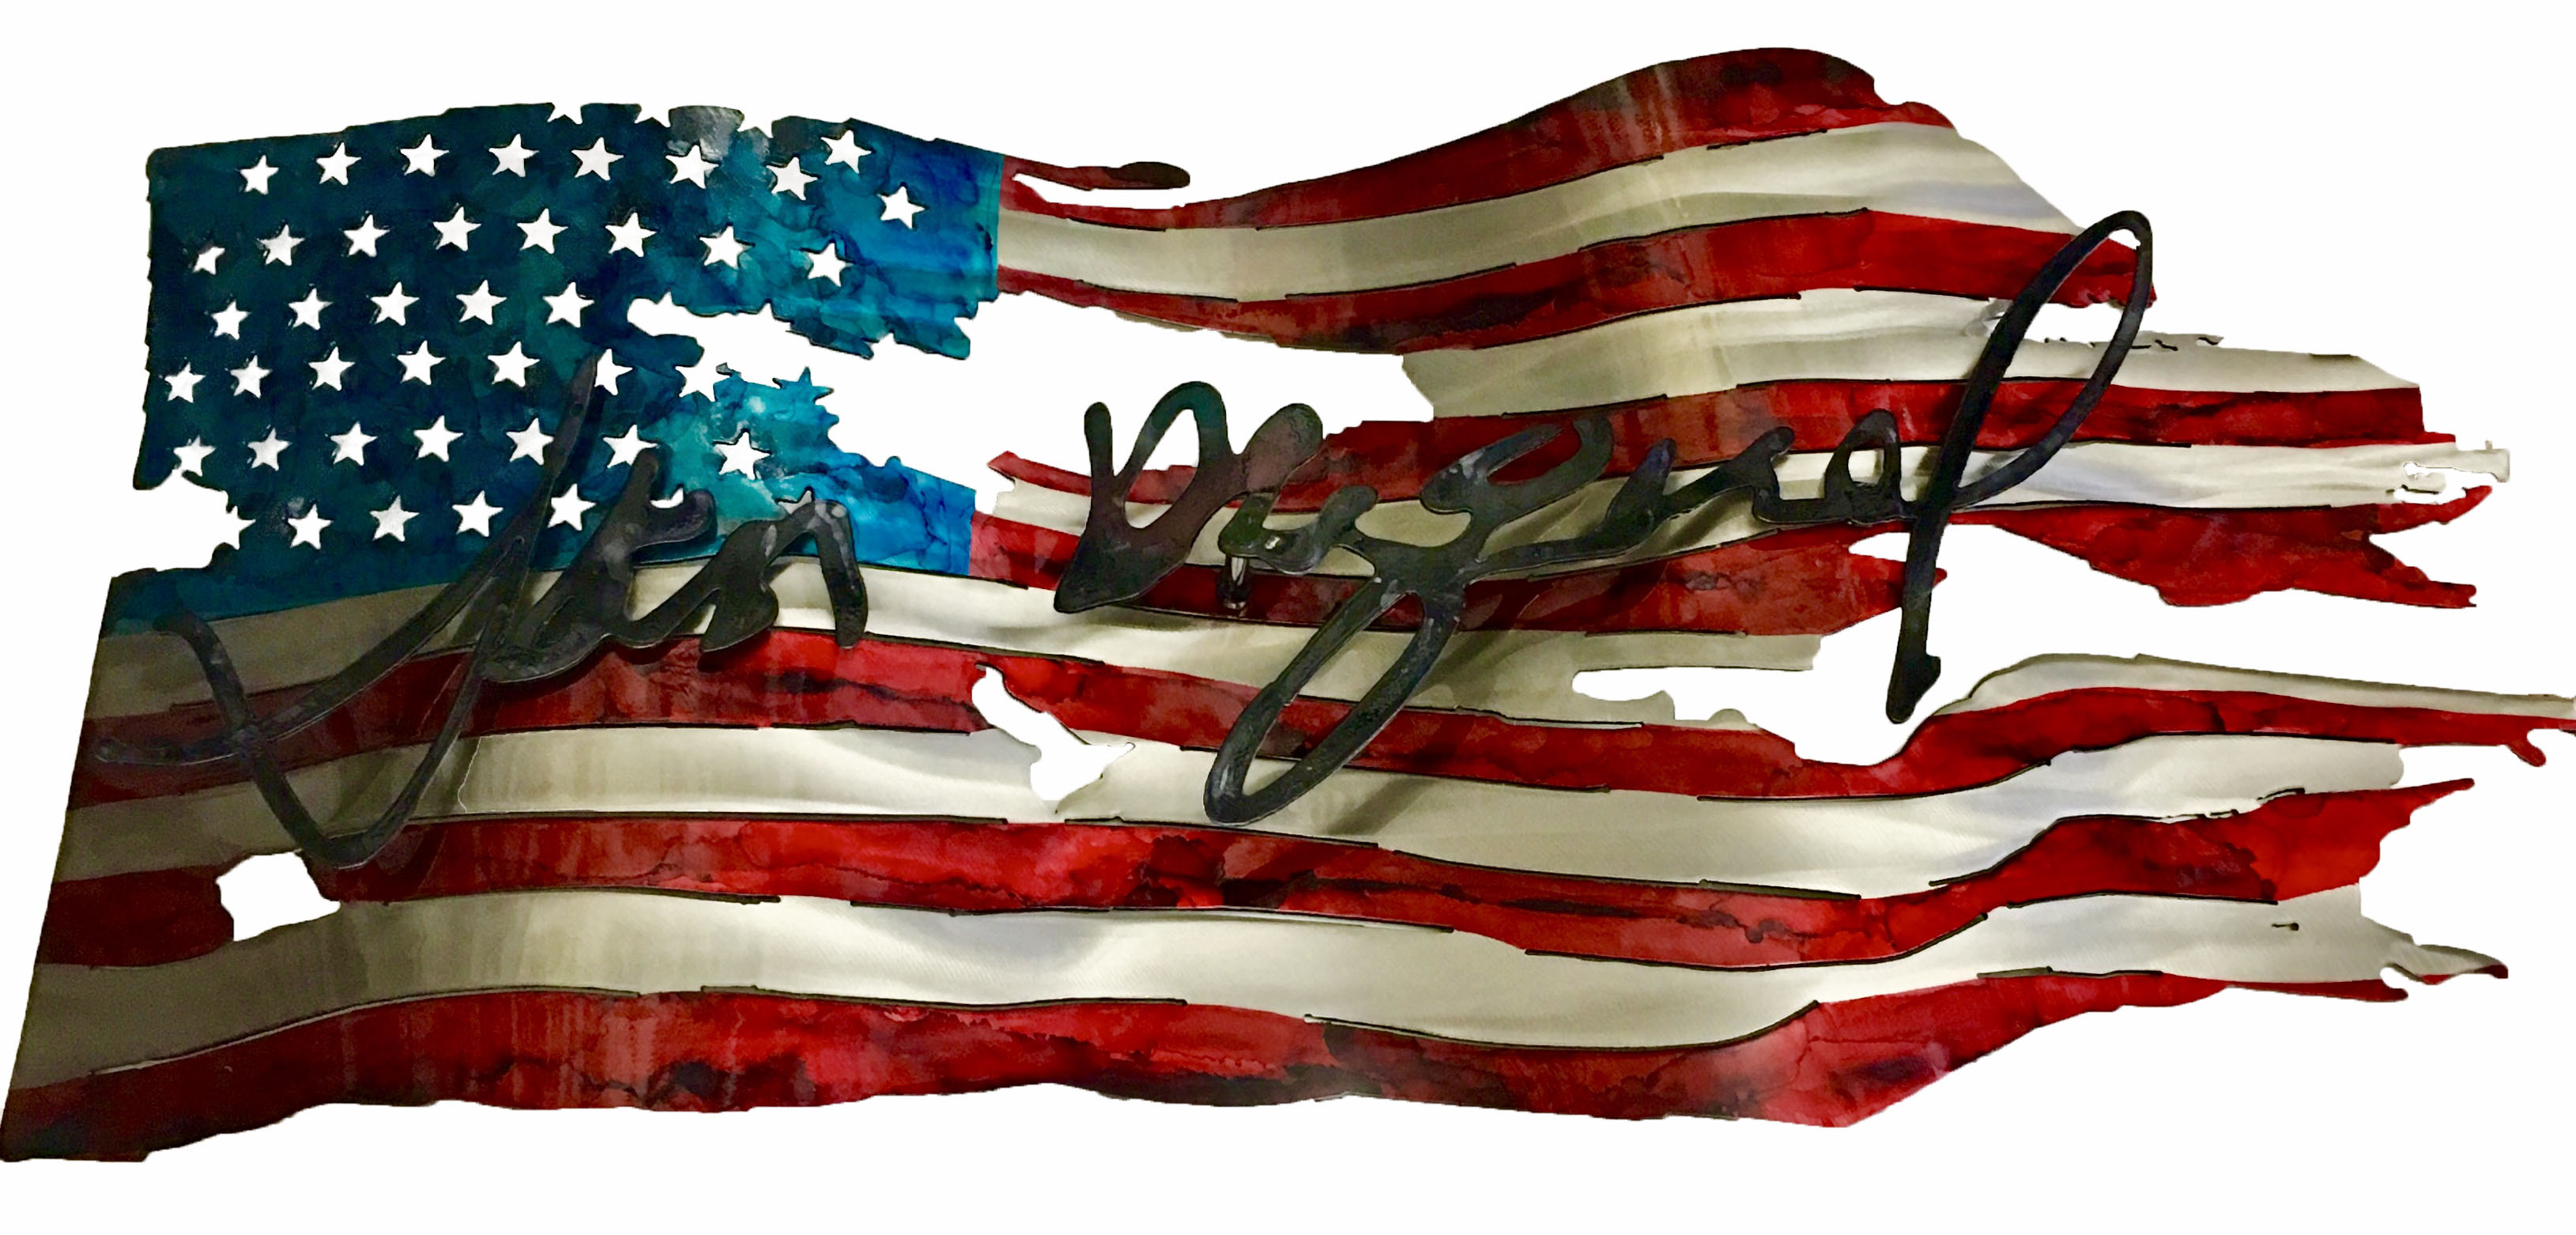 Custom Flag_Signature_Autograph_JohnHanc